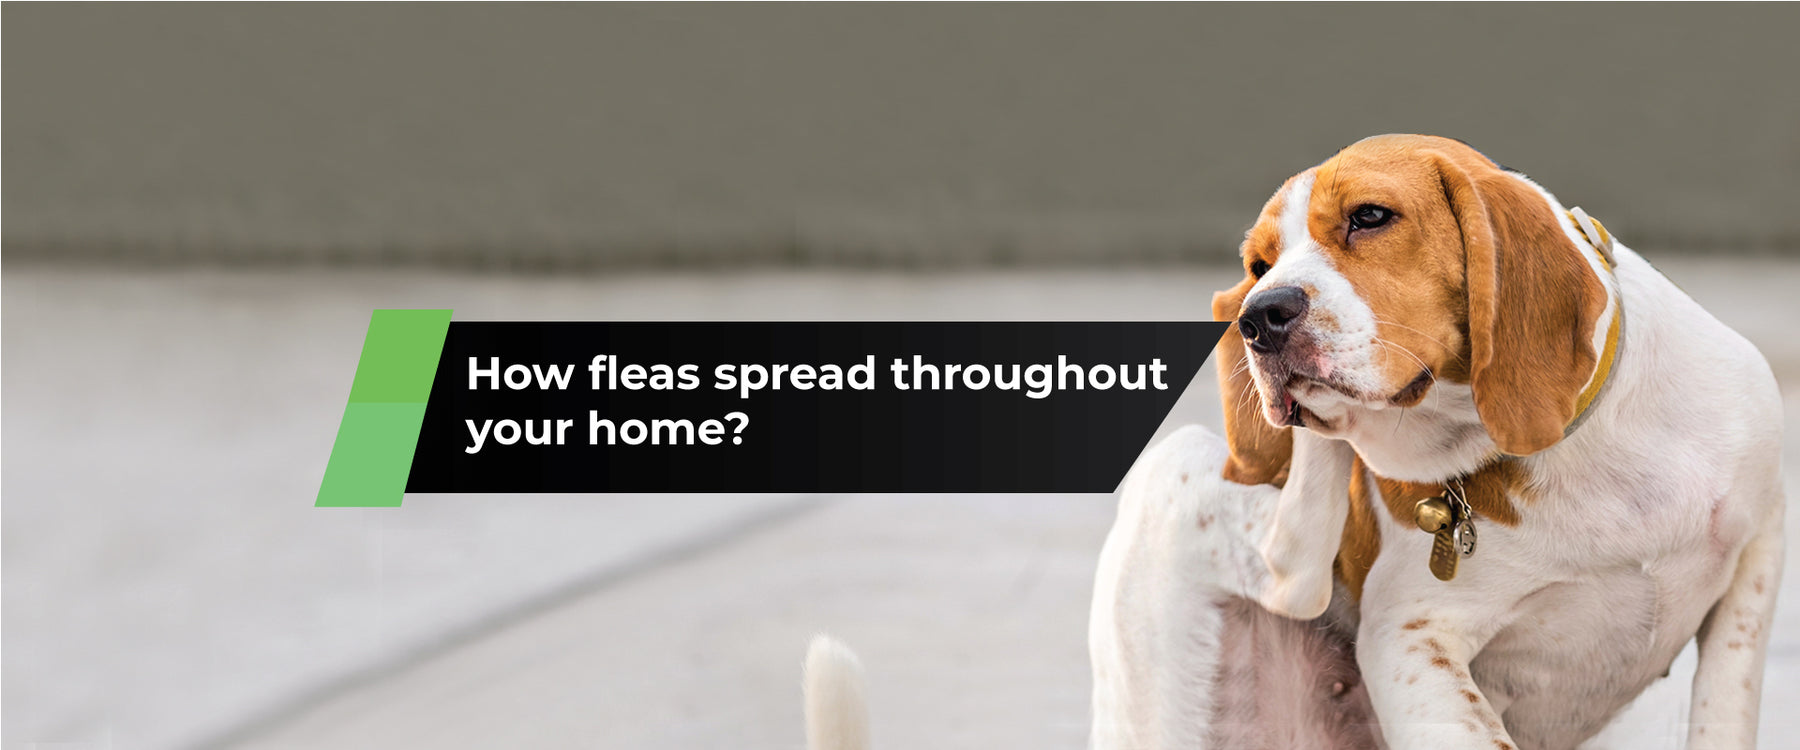 How Fleas Spread throughout your Home (and what you can do about it)